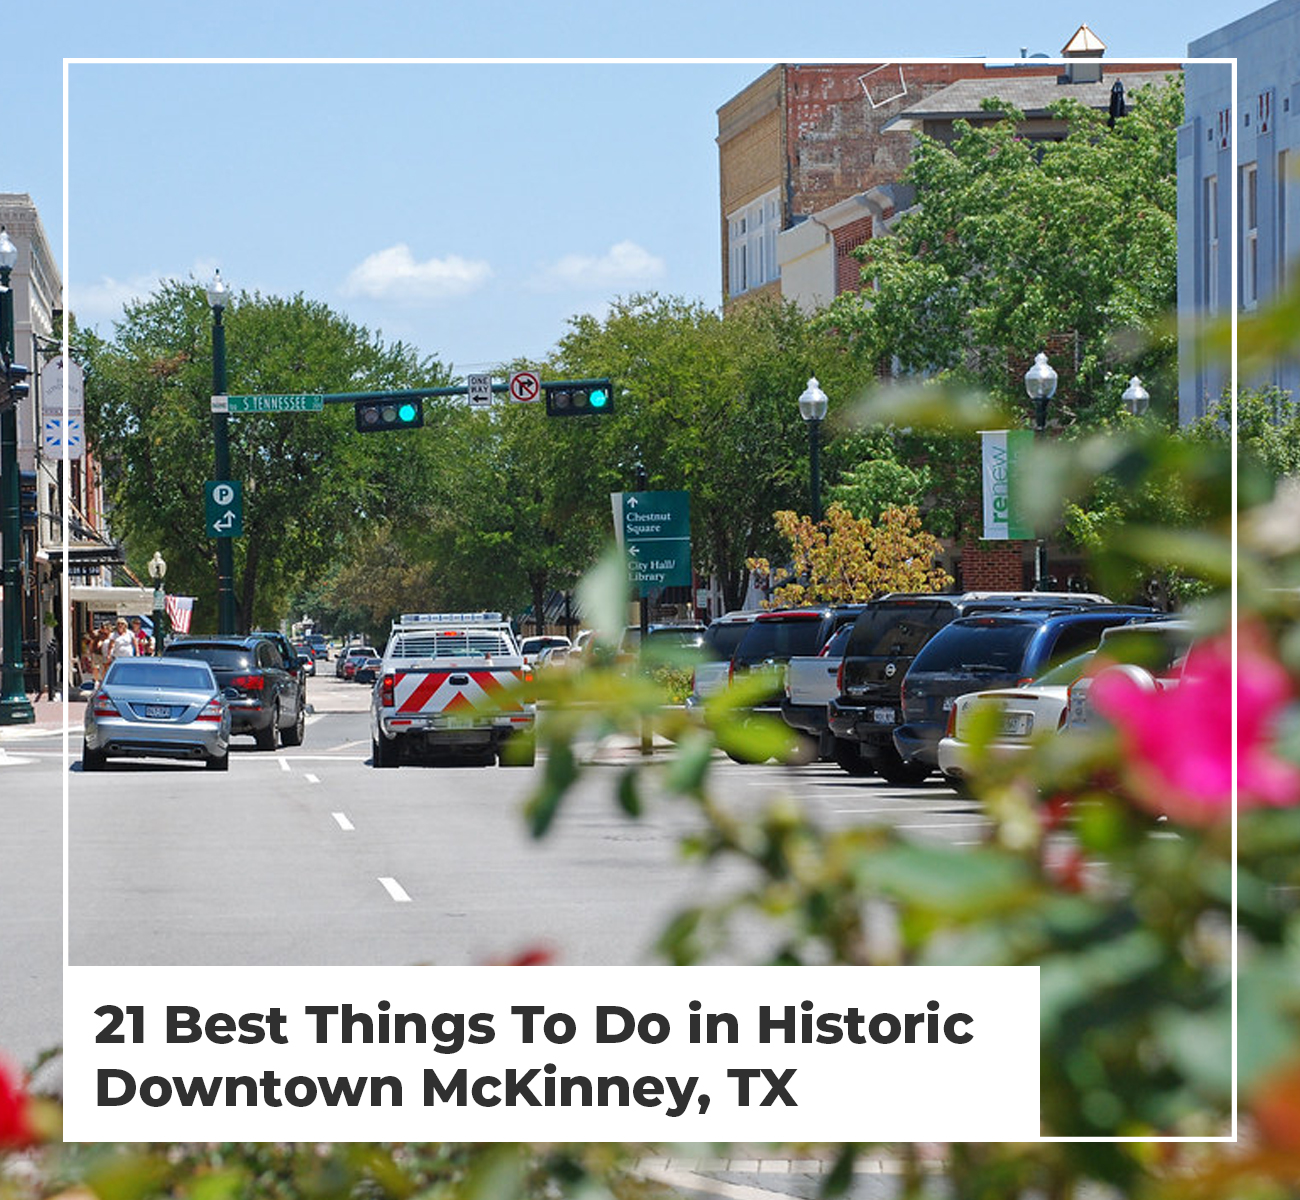 21 Best Things To Do in Mckinney, TX